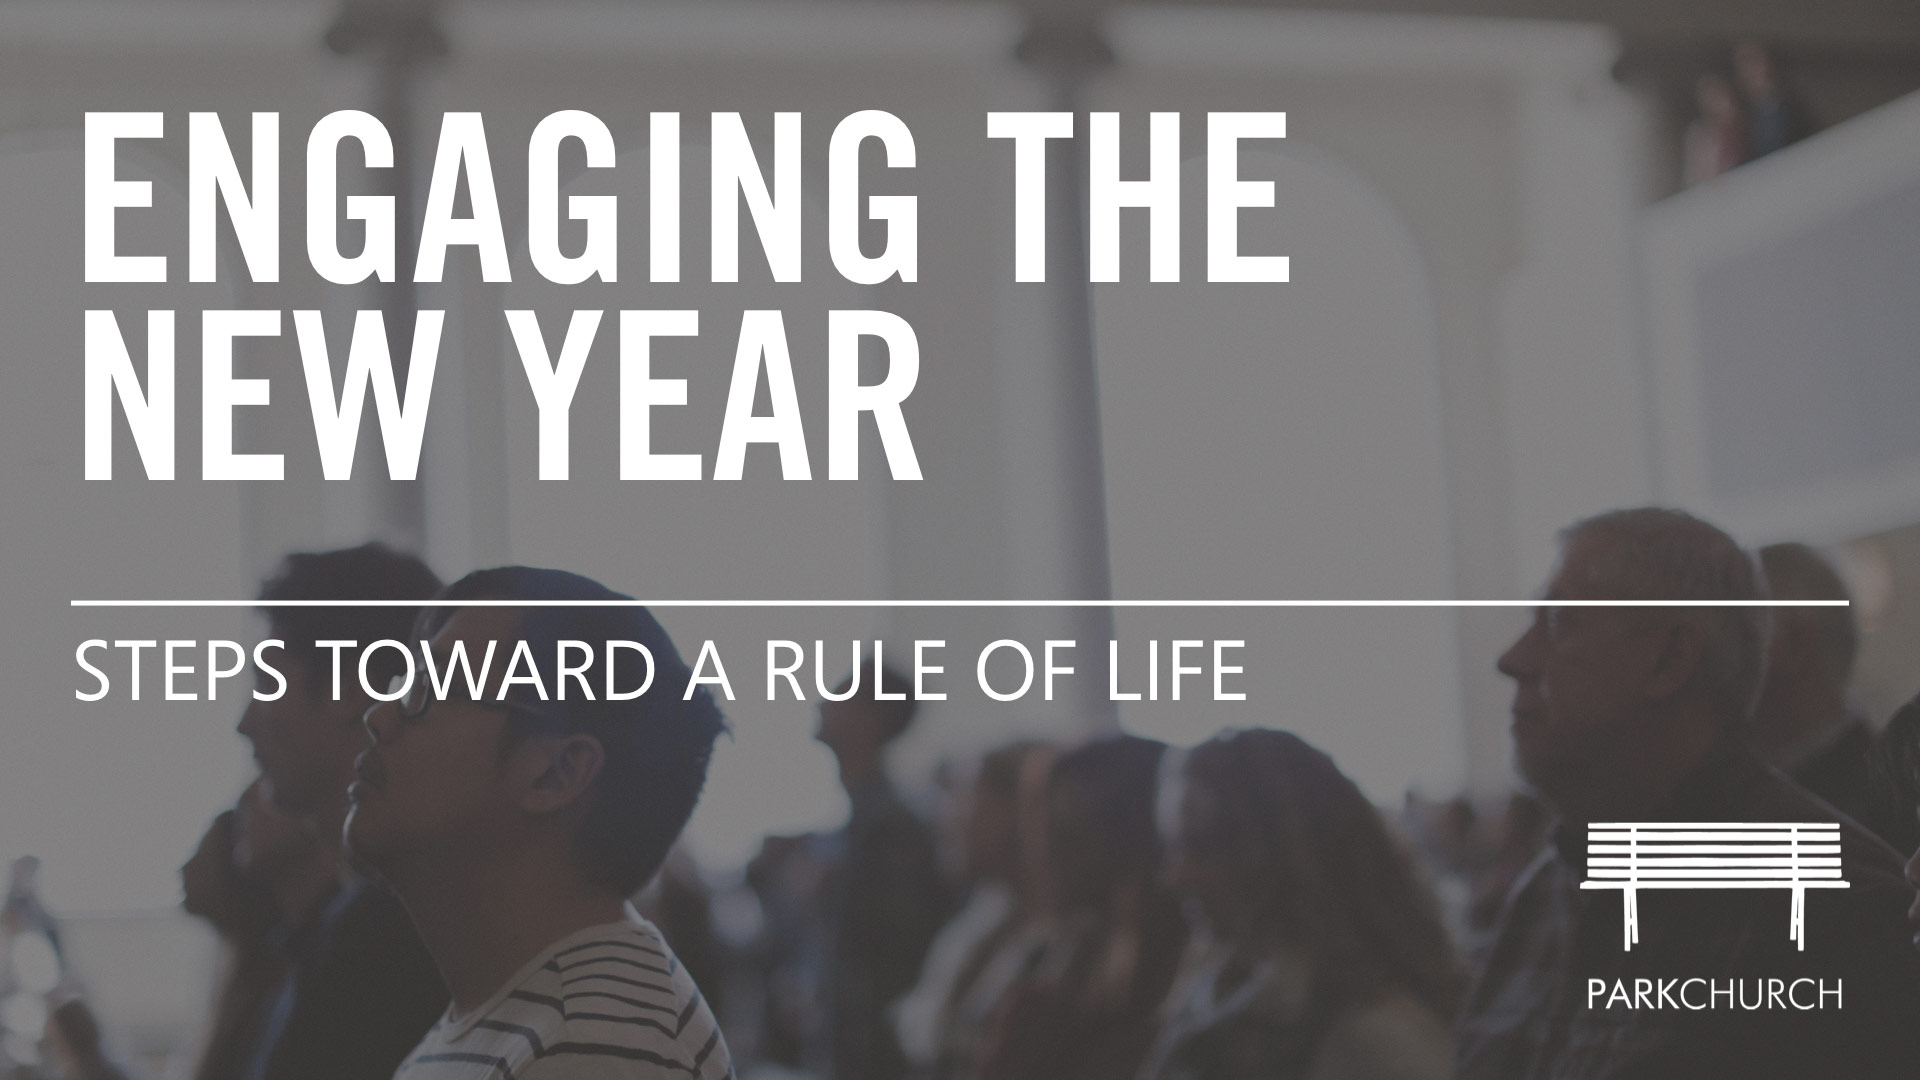 Engaging the New Year: Steps to a Rule of Life